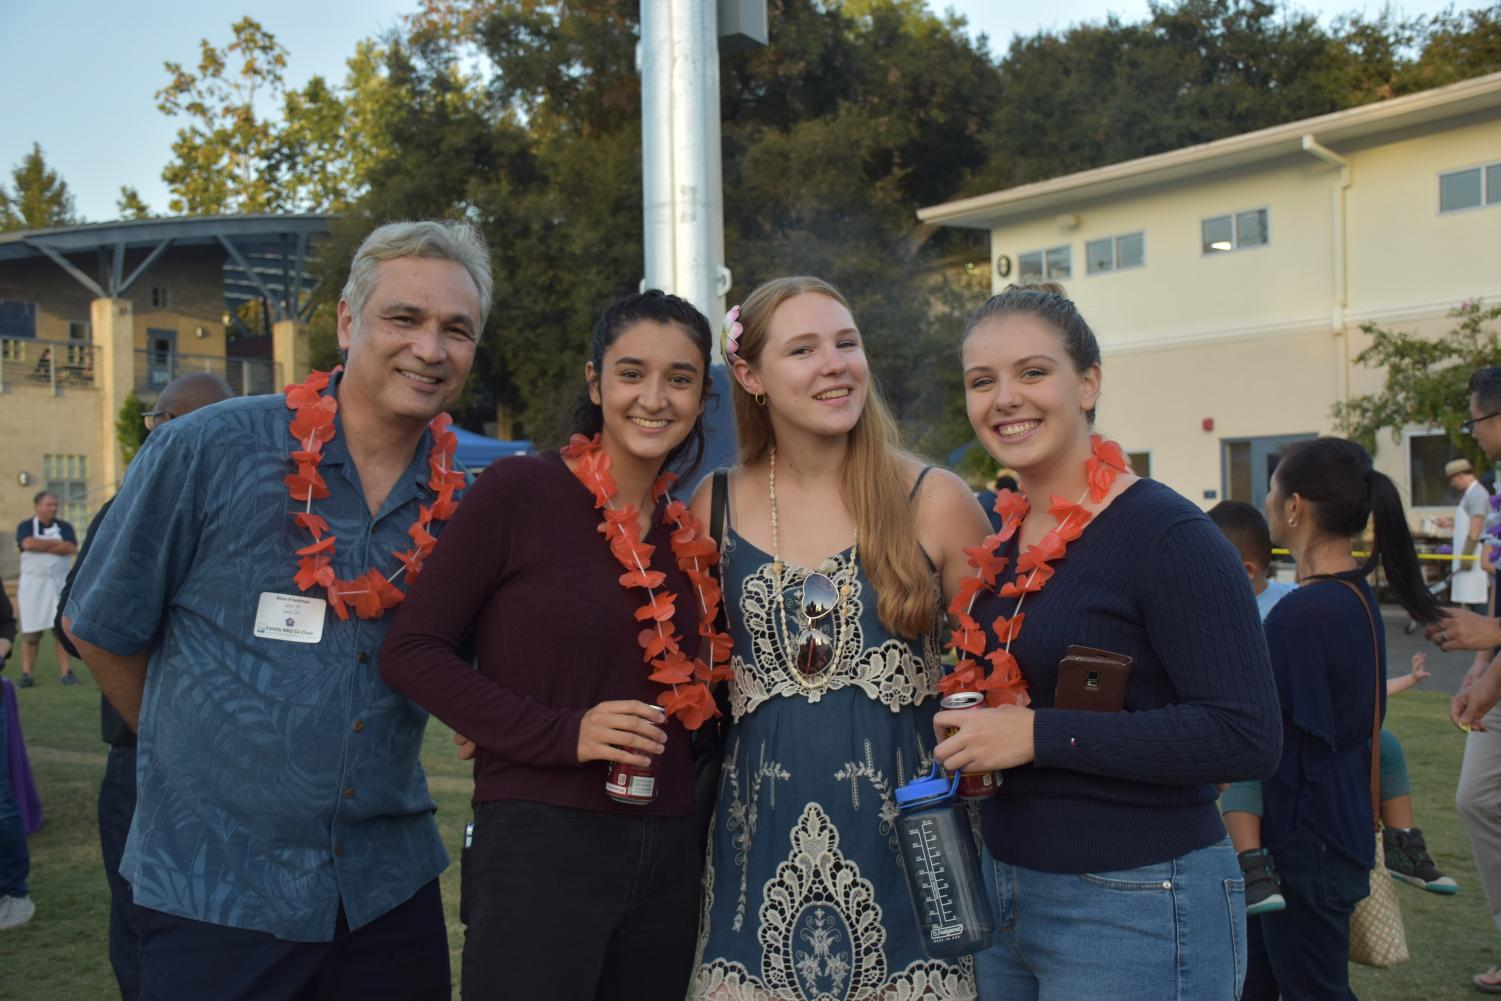 Mr. Friedman, Lara Friedman '19, Sinclaire Ledahl '19 and Danielle Maxwell '19 at the family BBQ.